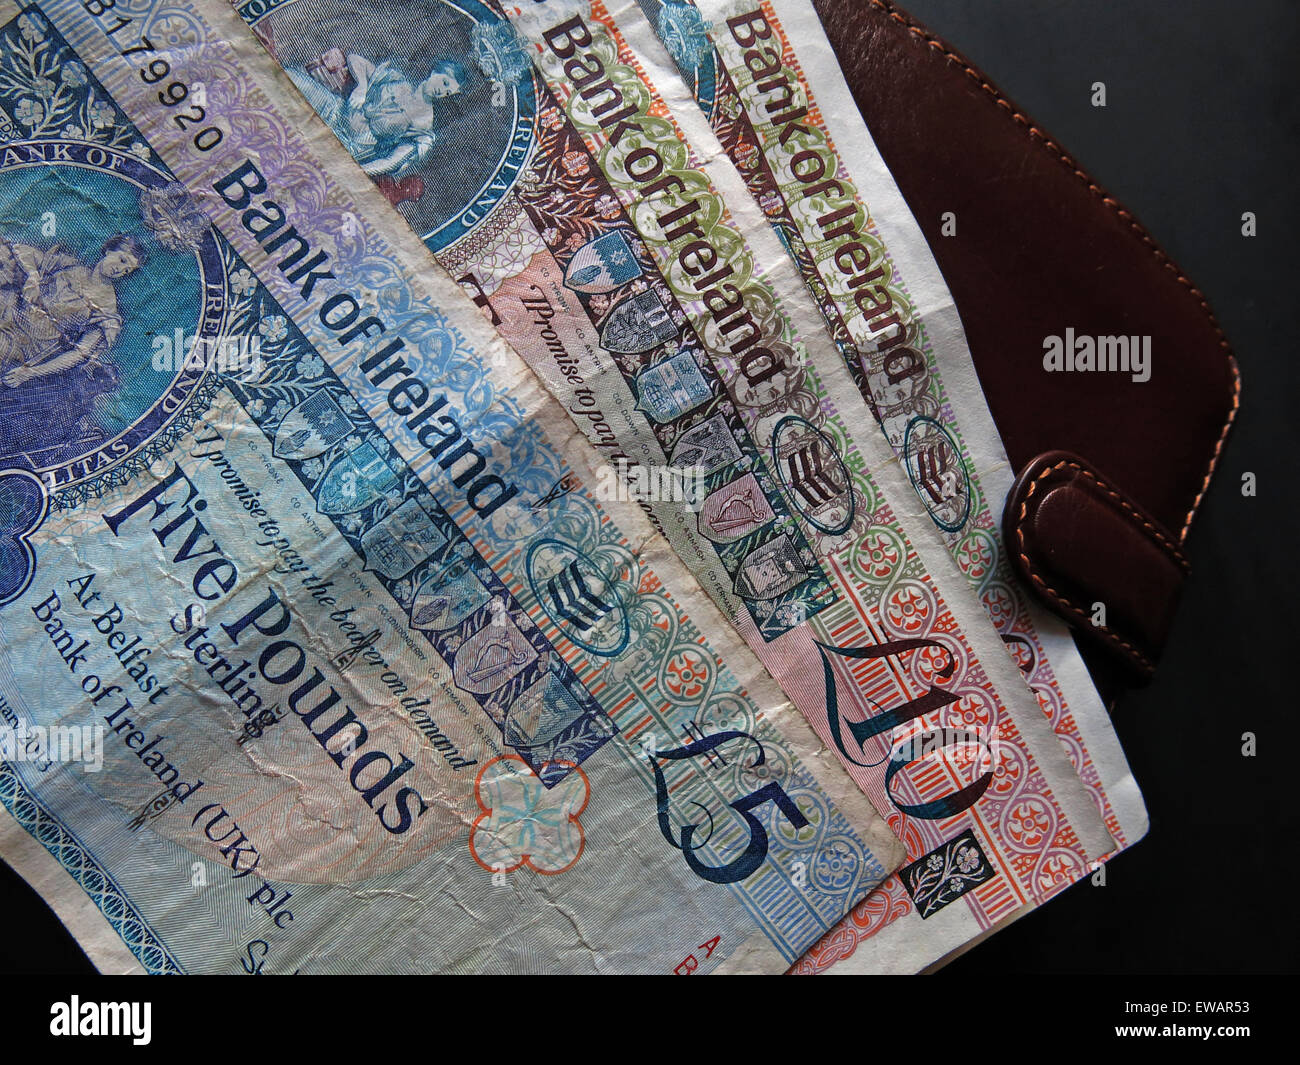 Note,Eire,republic,of,coin,Sterling,legal tender,from the,Bank Of Ireland,Belfast,bank,of,Ireland,region,regional,economy,economic,money,monetary,union,UK,United Kingdom,housekeeping,good,bad,currency,wealth,capital,worth,rich,wealthy,fund,funds,ready money,hard cash,ten,five,fiver,wallet,next,GoTonySmith,legal,tender,small,smallest,banks,Europe,european,GB,Great Britain,Great Britain,EC,EU,EEC,hard,cash,ready,Derry,Londonderry,DUP,Sinn Fein,politics,political,tenner,twentypence,twenty,pence,banknote,billetes,bureau,business,buy,buying,caja,change,commerce,commercialism,capitalism,austerity,global,crash,global crash,cuenta,debt,dinero,dollar,enterprise,euro,exchange,export,exporting,global,globalization,historical,history,monetary,negocio,number,paper,paper money,folding,power,saving,spending,profit,prosperity,prosperous,queen,rate,spend,spending,system,trade,viajar,vintage,wealth,world,bailout,bail out,bail,out,six counties,6,six,county,counties,to,a,next to a wallet,brown,Buy Pictures of,Buy Images Of